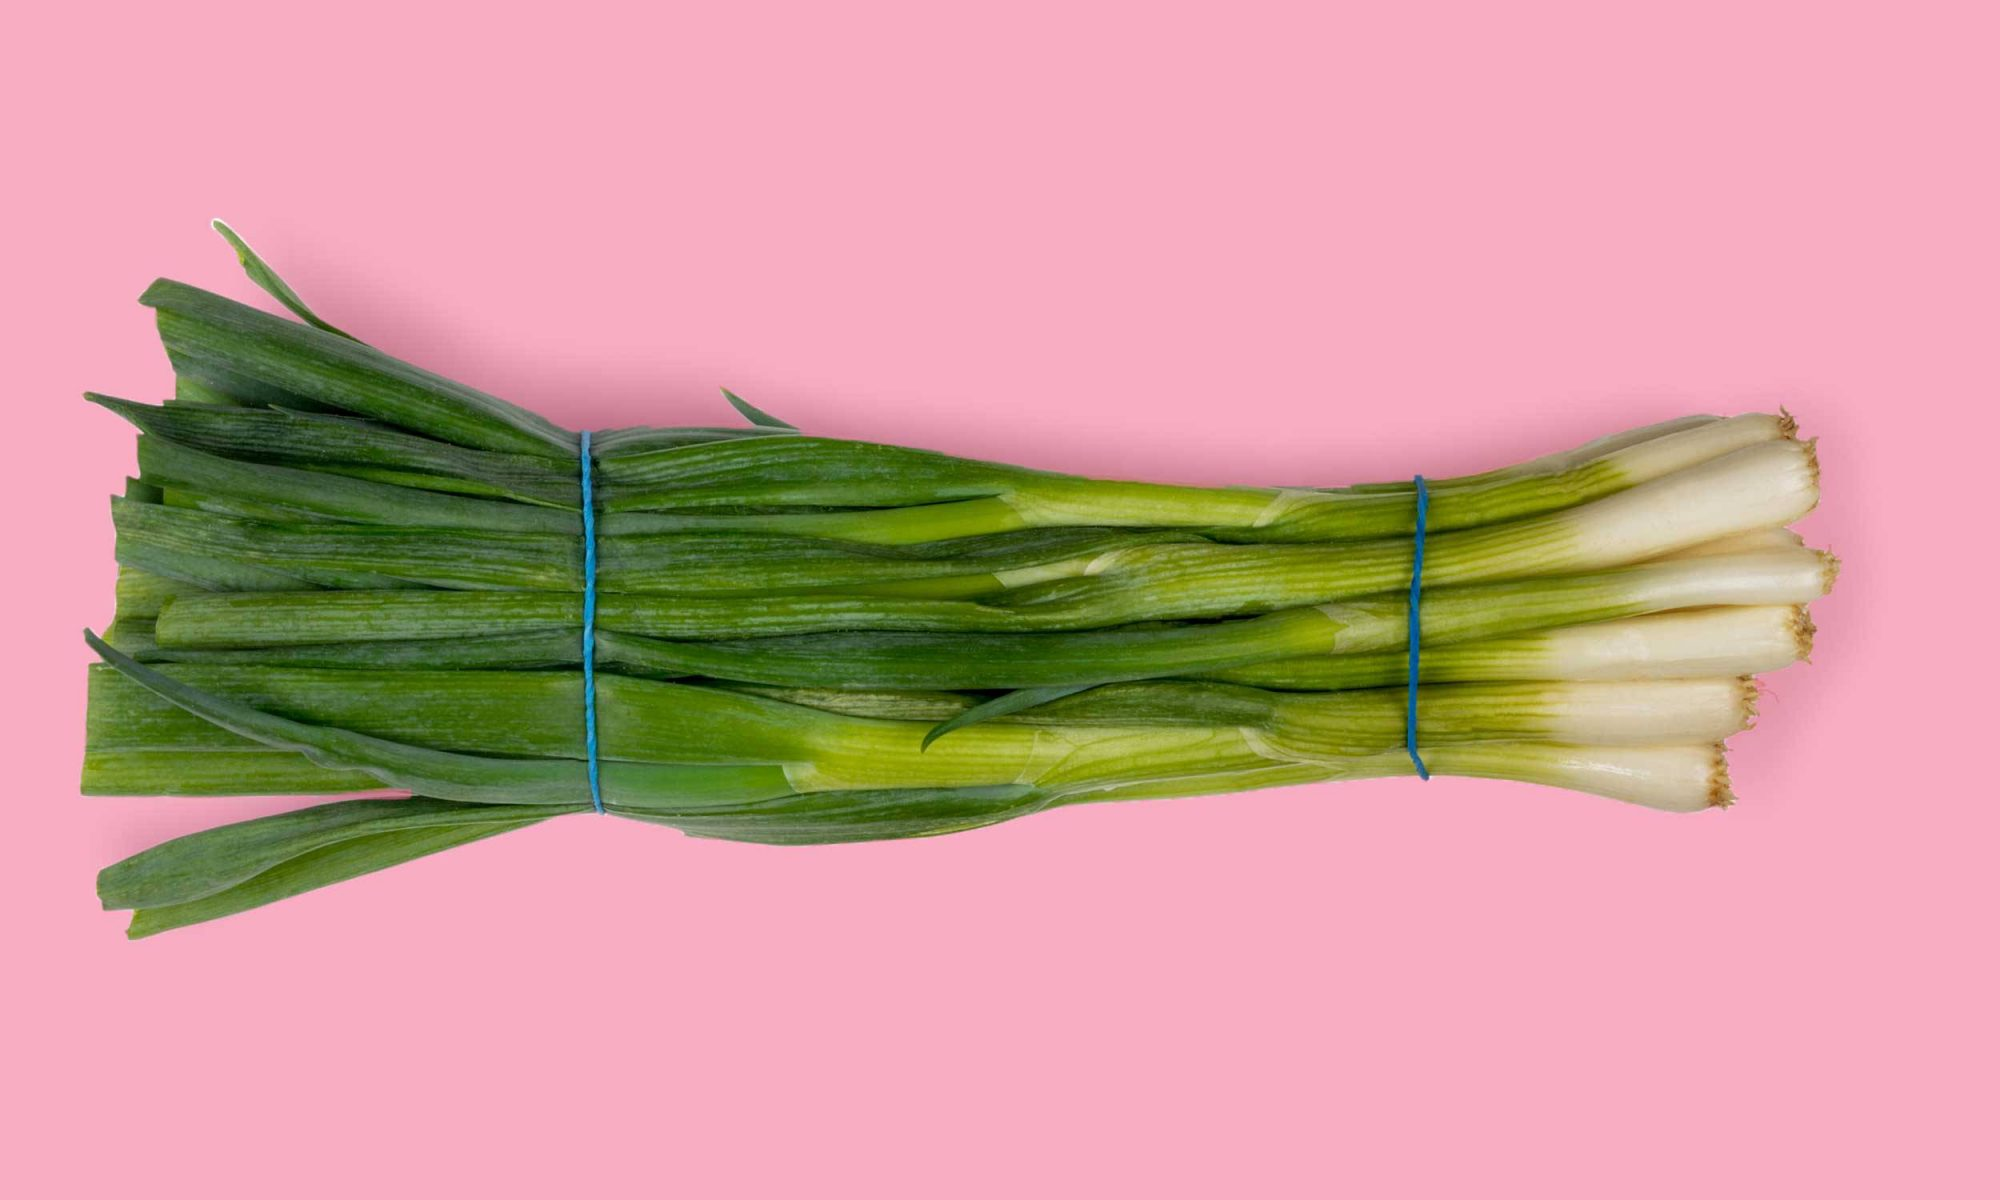 How to Store Scallions So They Don't Wilt